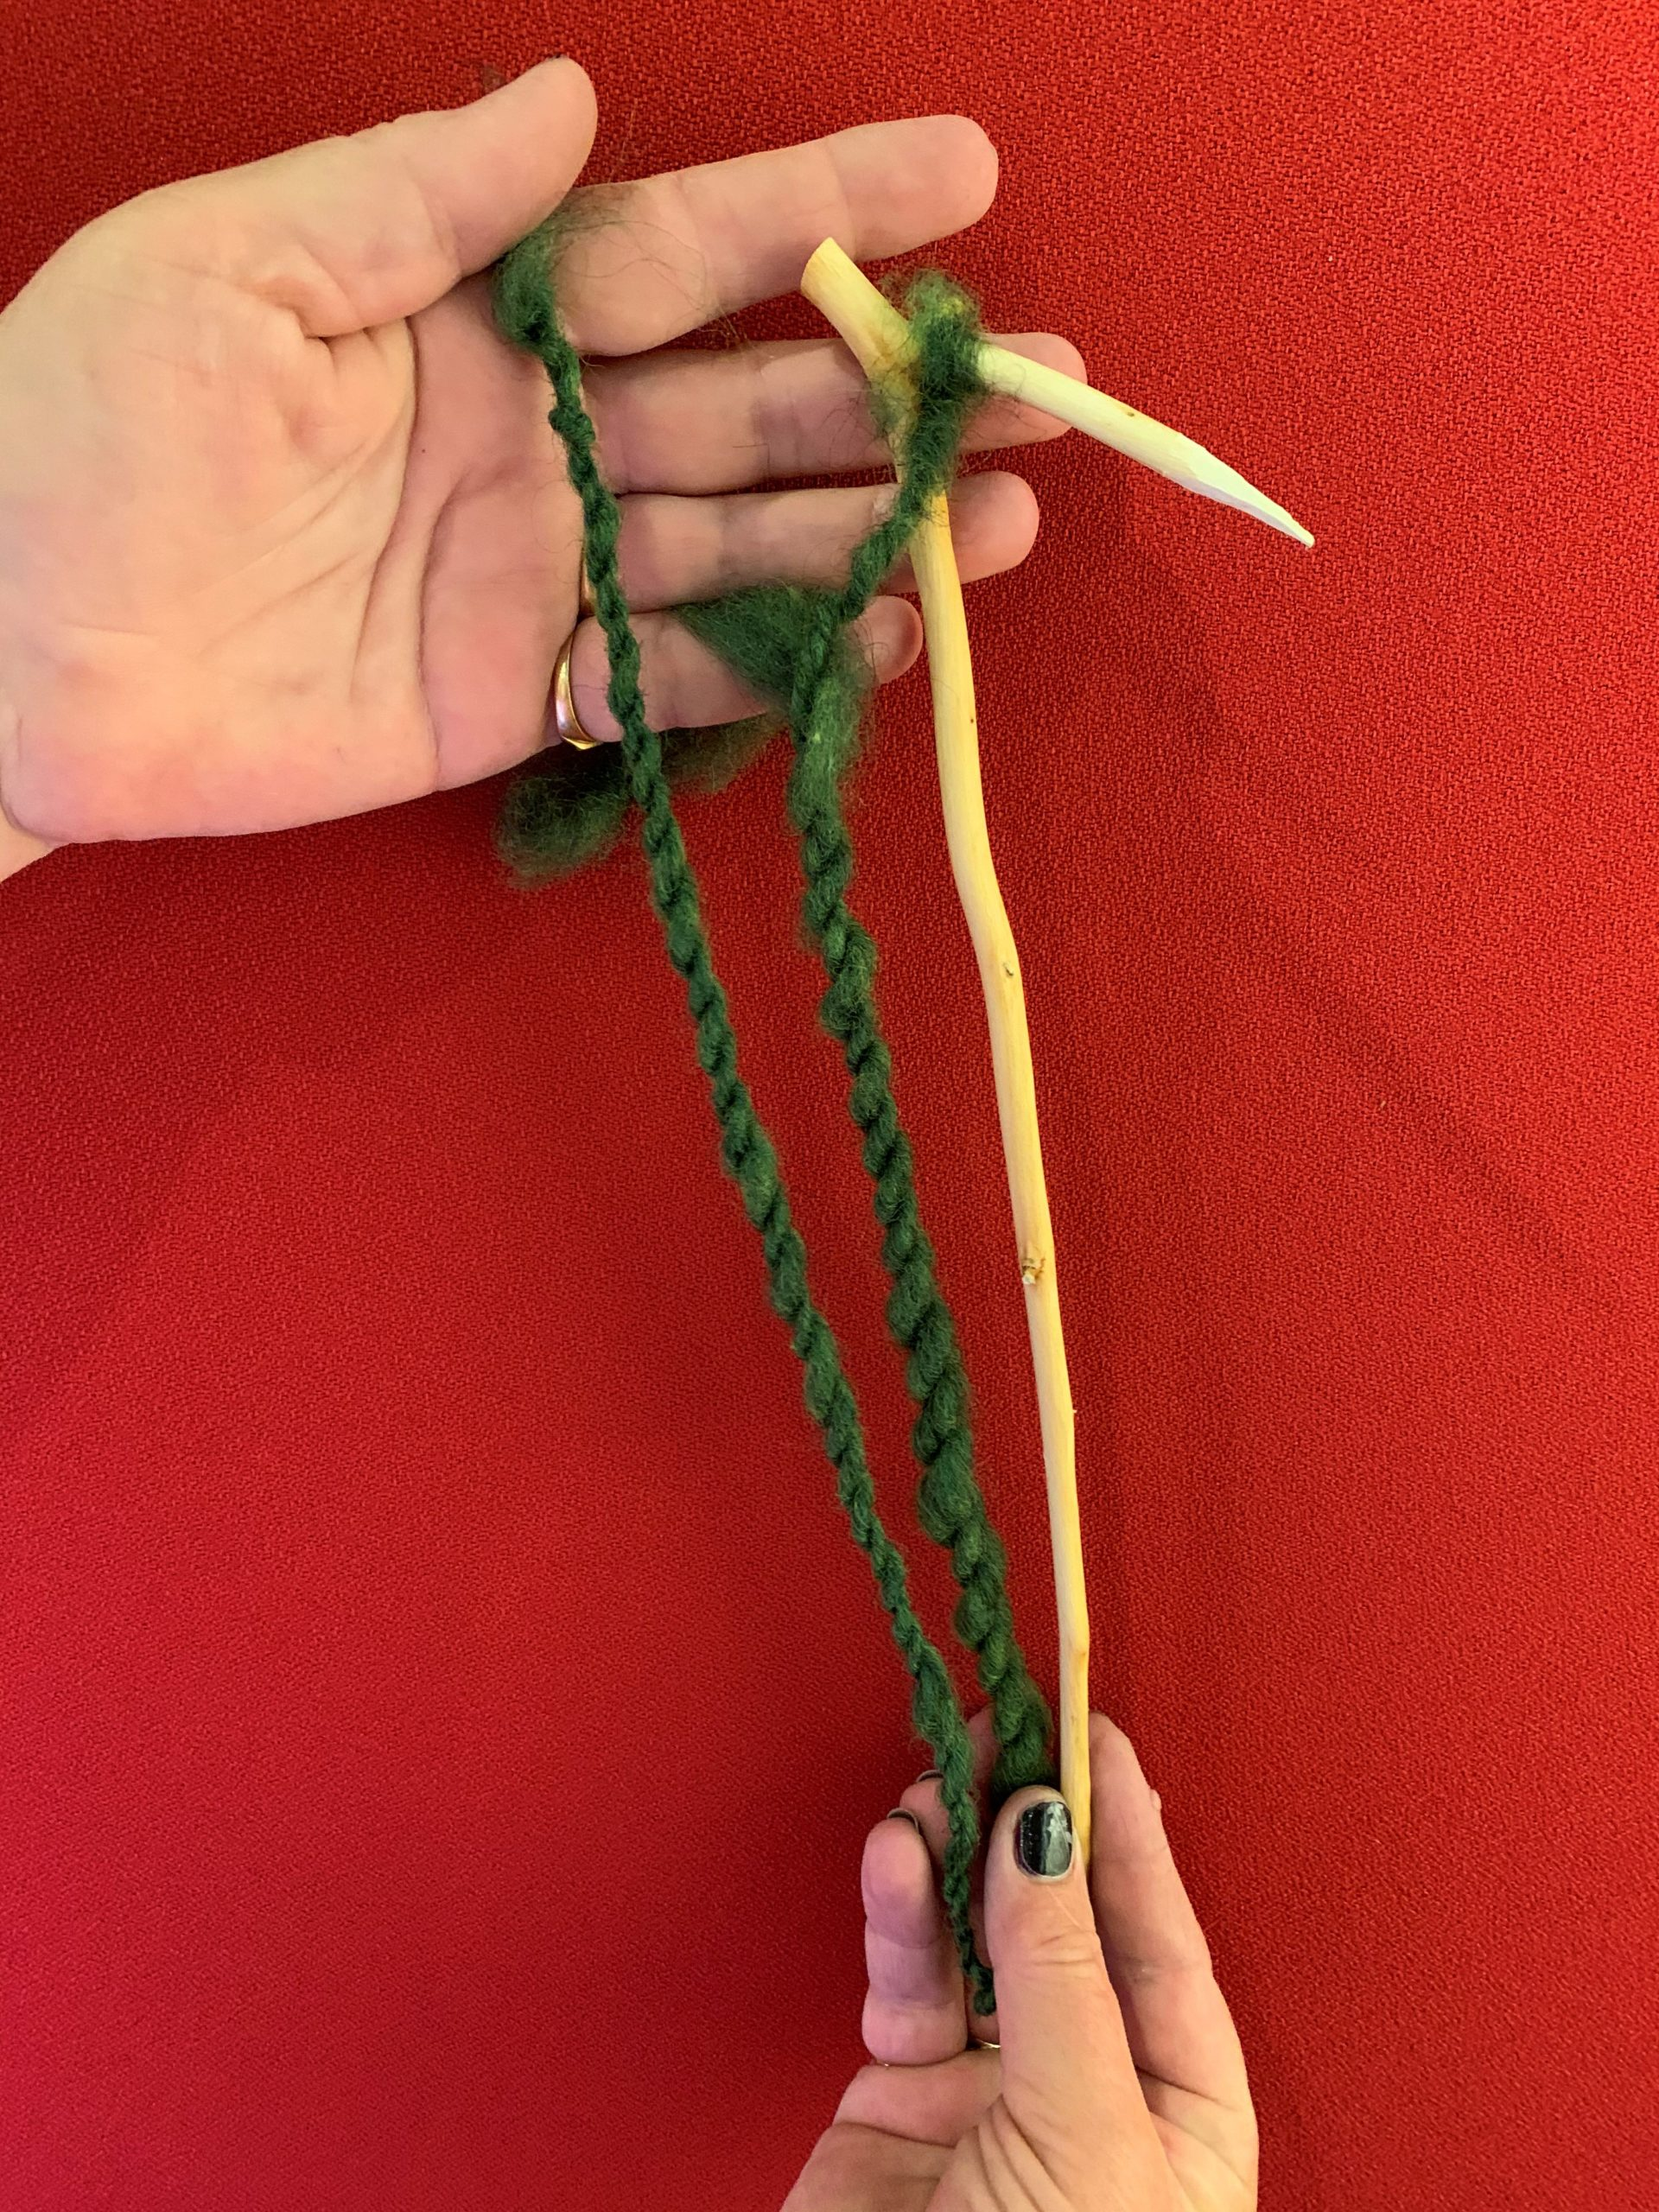 October 28, 2020 Österlen's museum Spin with a spinning hook and create with wool thread scaled österlen.se